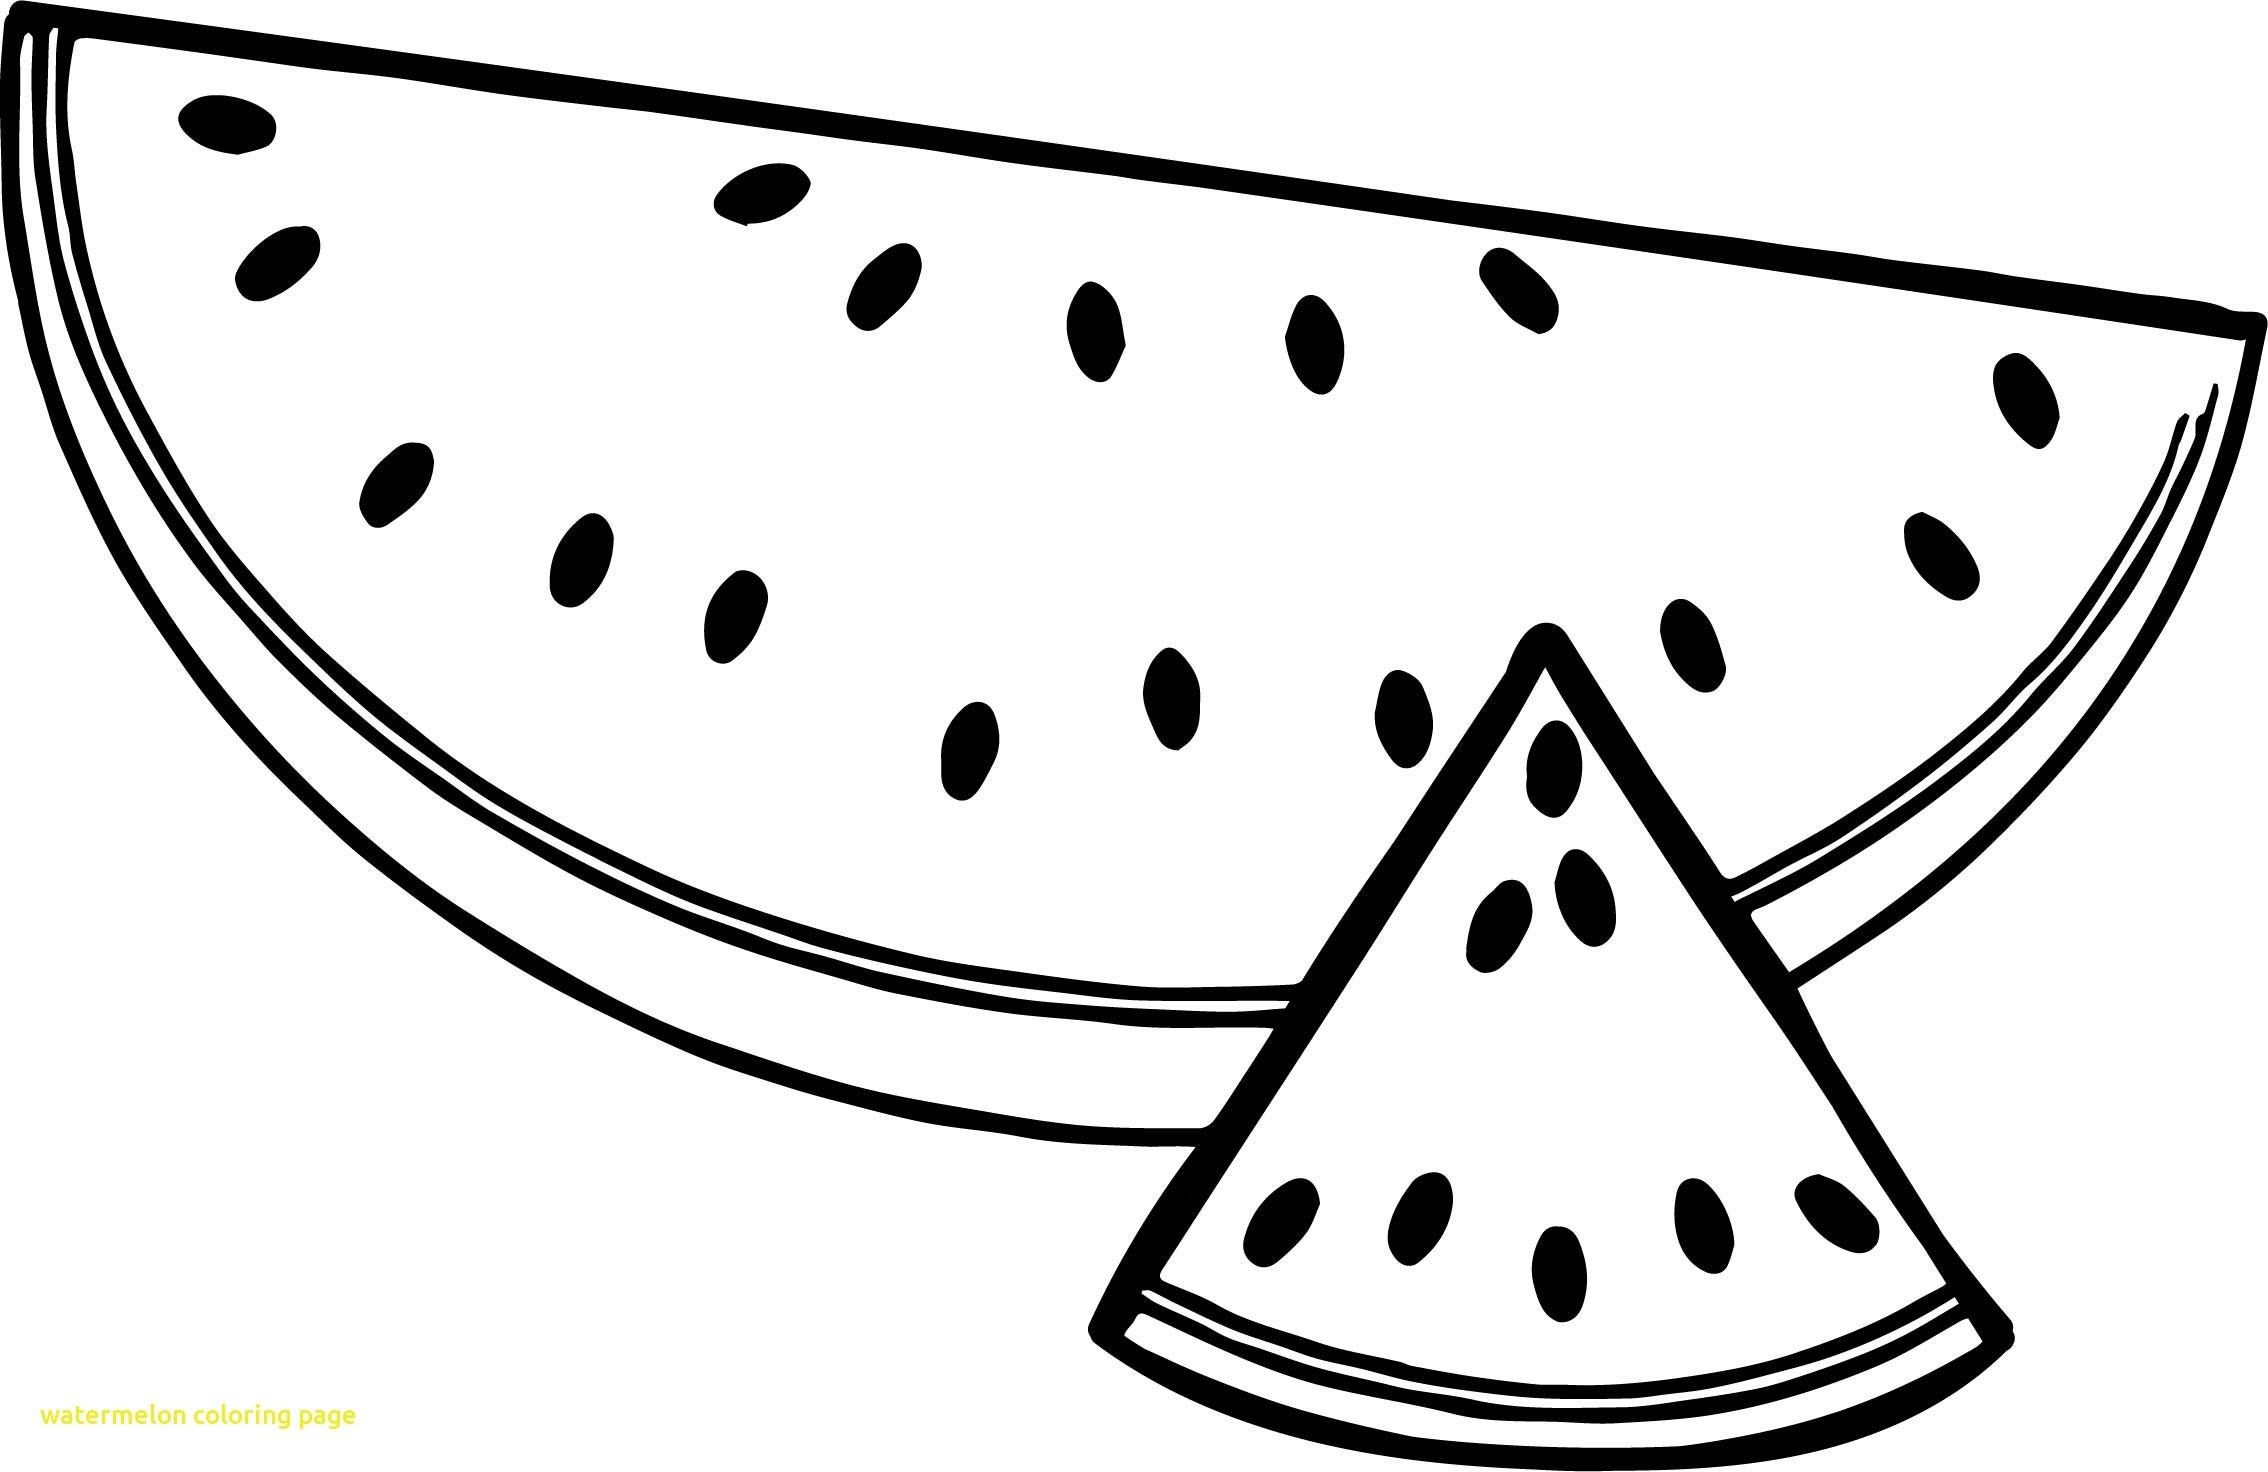 Awesome Watermelons Coloring Pages for Kids